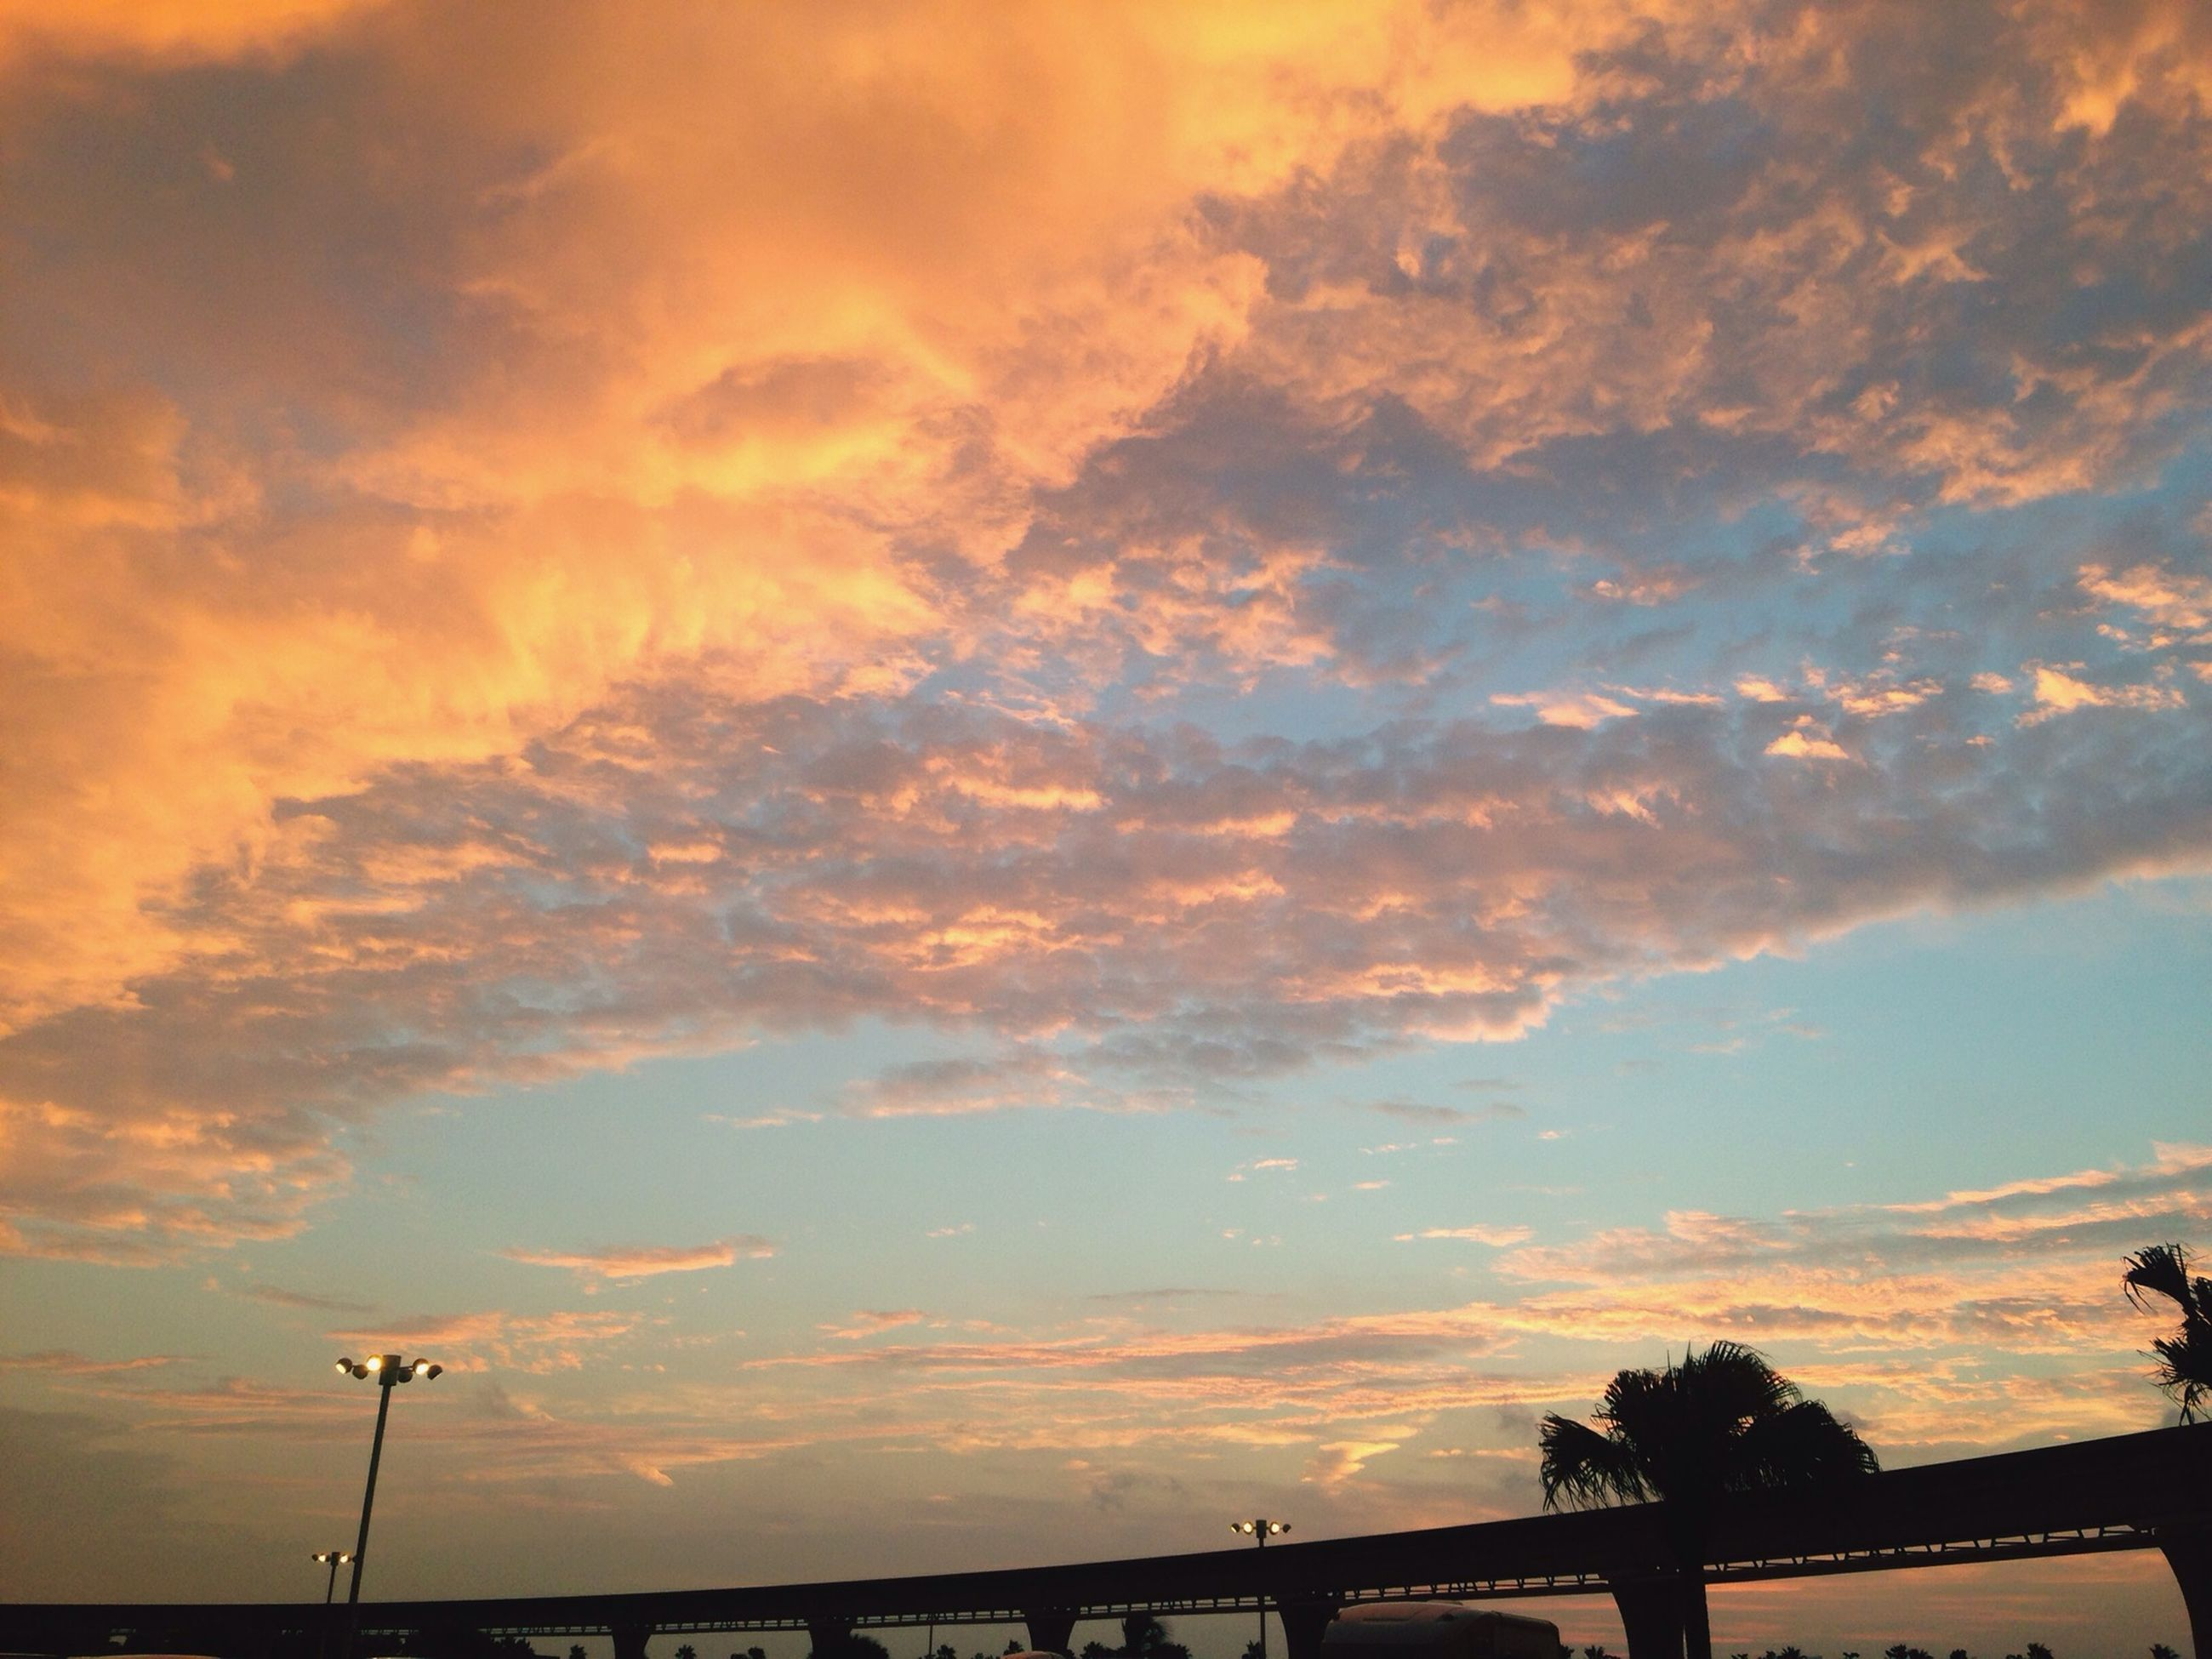 sunset, sky, silhouette, cloud - sky, low angle view, cloudy, beauty in nature, street light, orange color, scenics, tranquility, cloud, nature, dramatic sky, tranquil scene, idyllic, outdoors, no people, weather, dusk